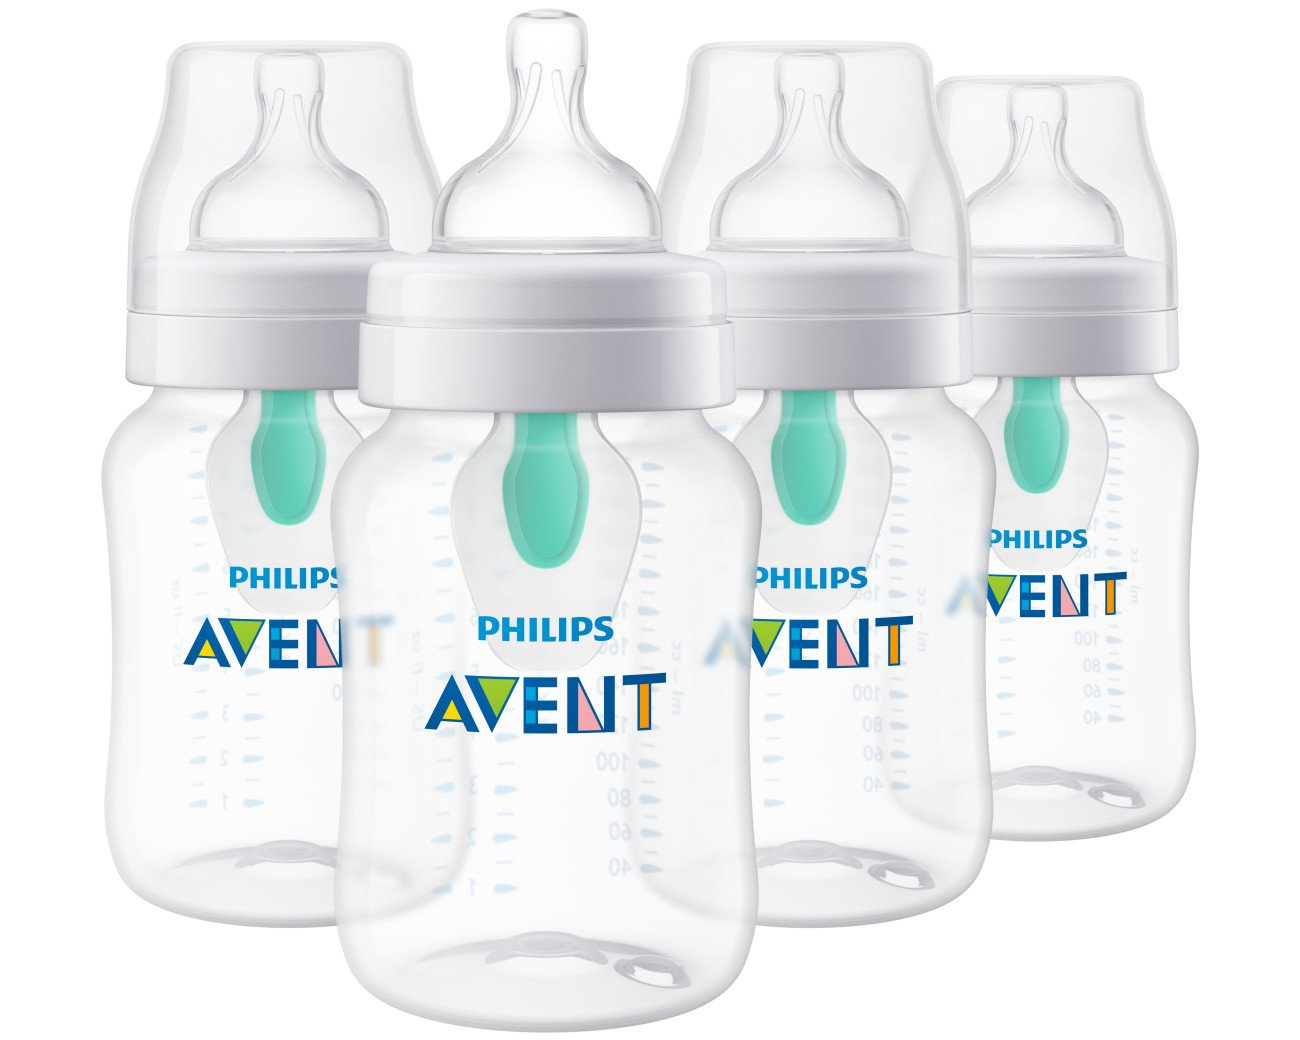 Philips Avent Anti-colic Baby Bottle with AirFree vent, Clear, 9oz, 4pk, SCF403/44 by Philips AVENT